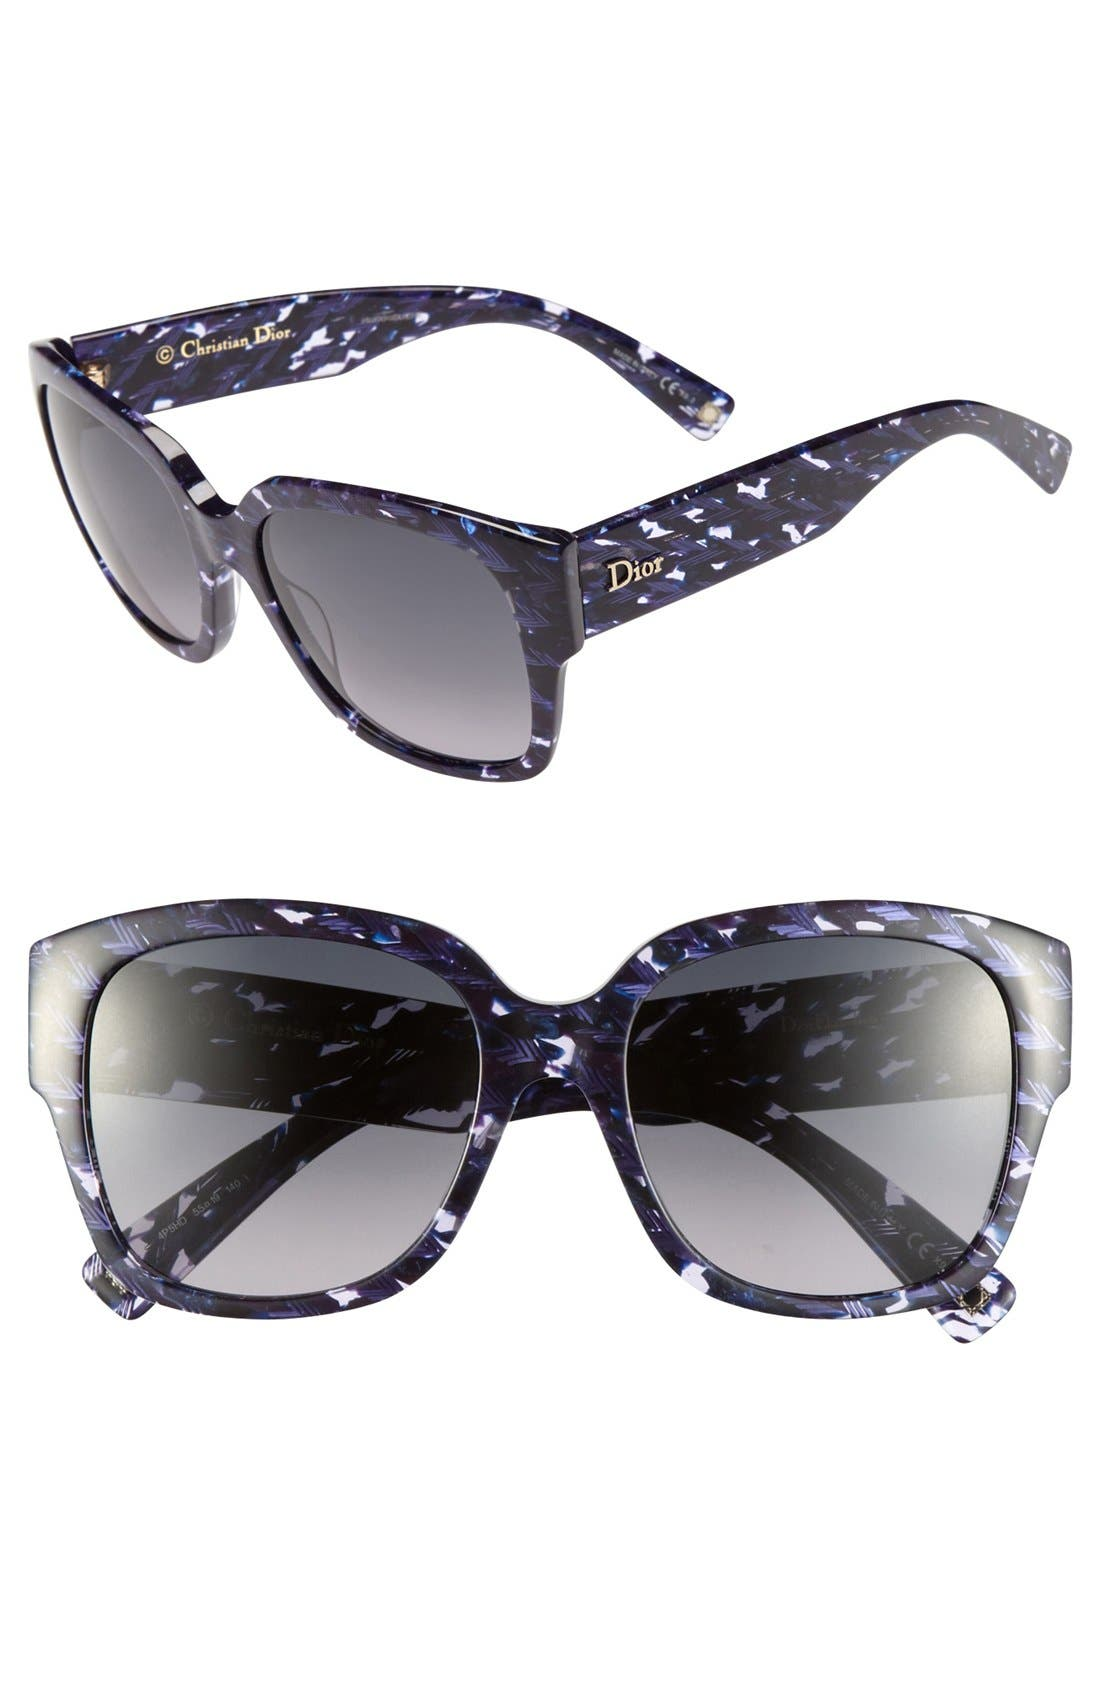 Alternate Image 1 Selected - Dior 'Flanelle' 55mm Sunglasses